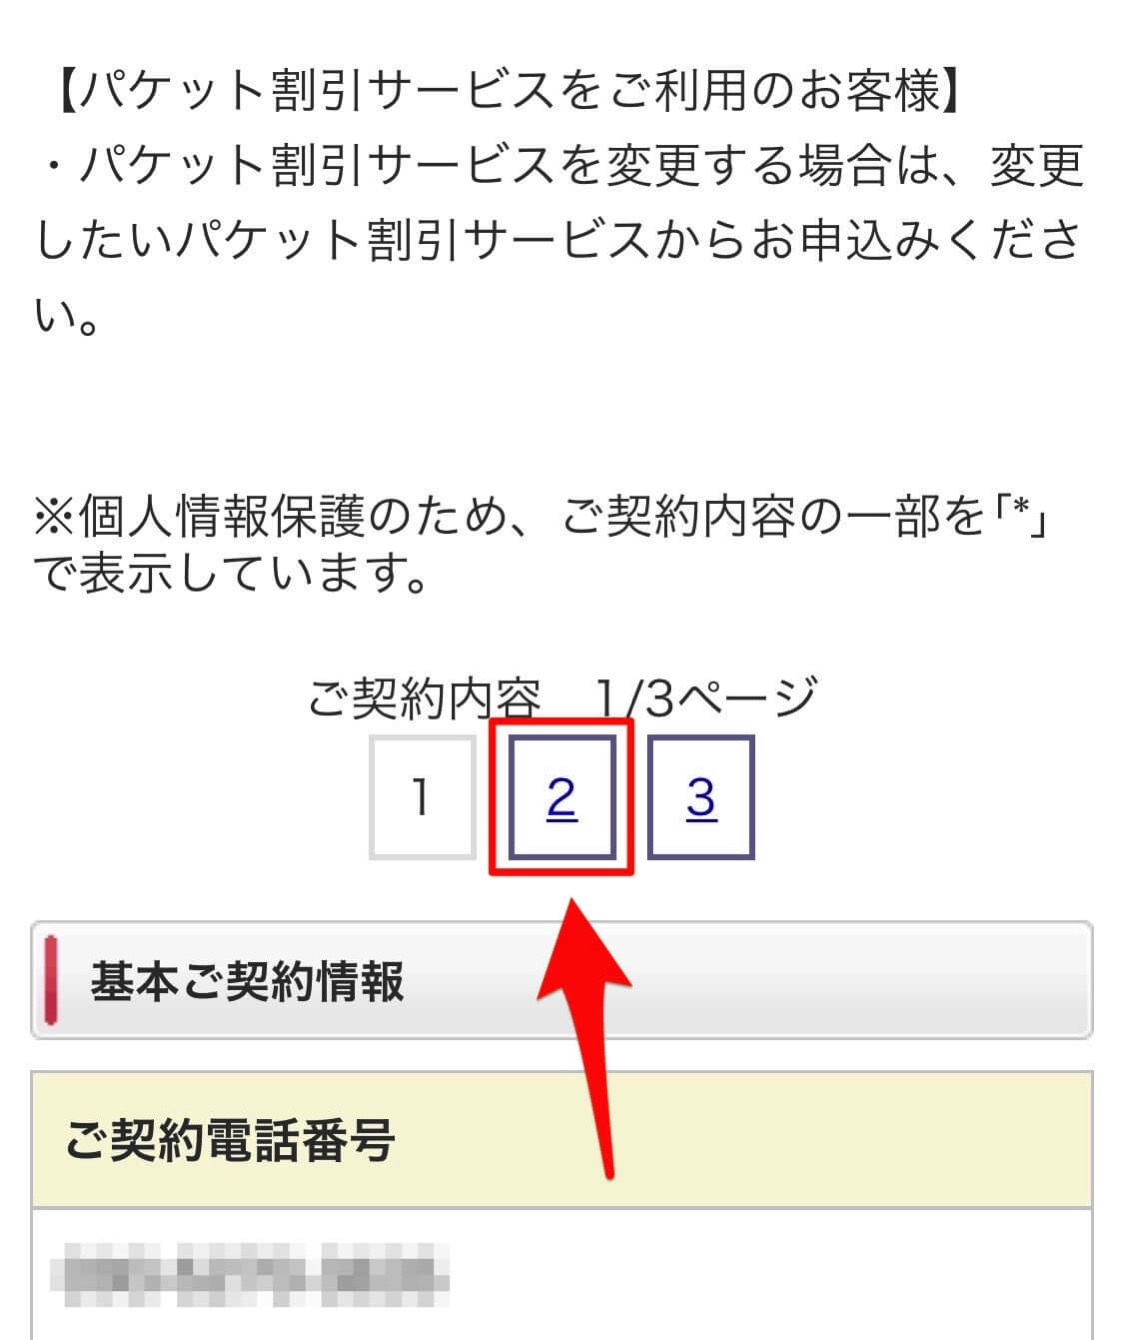 The docomo one number service cancellation of a contract 4